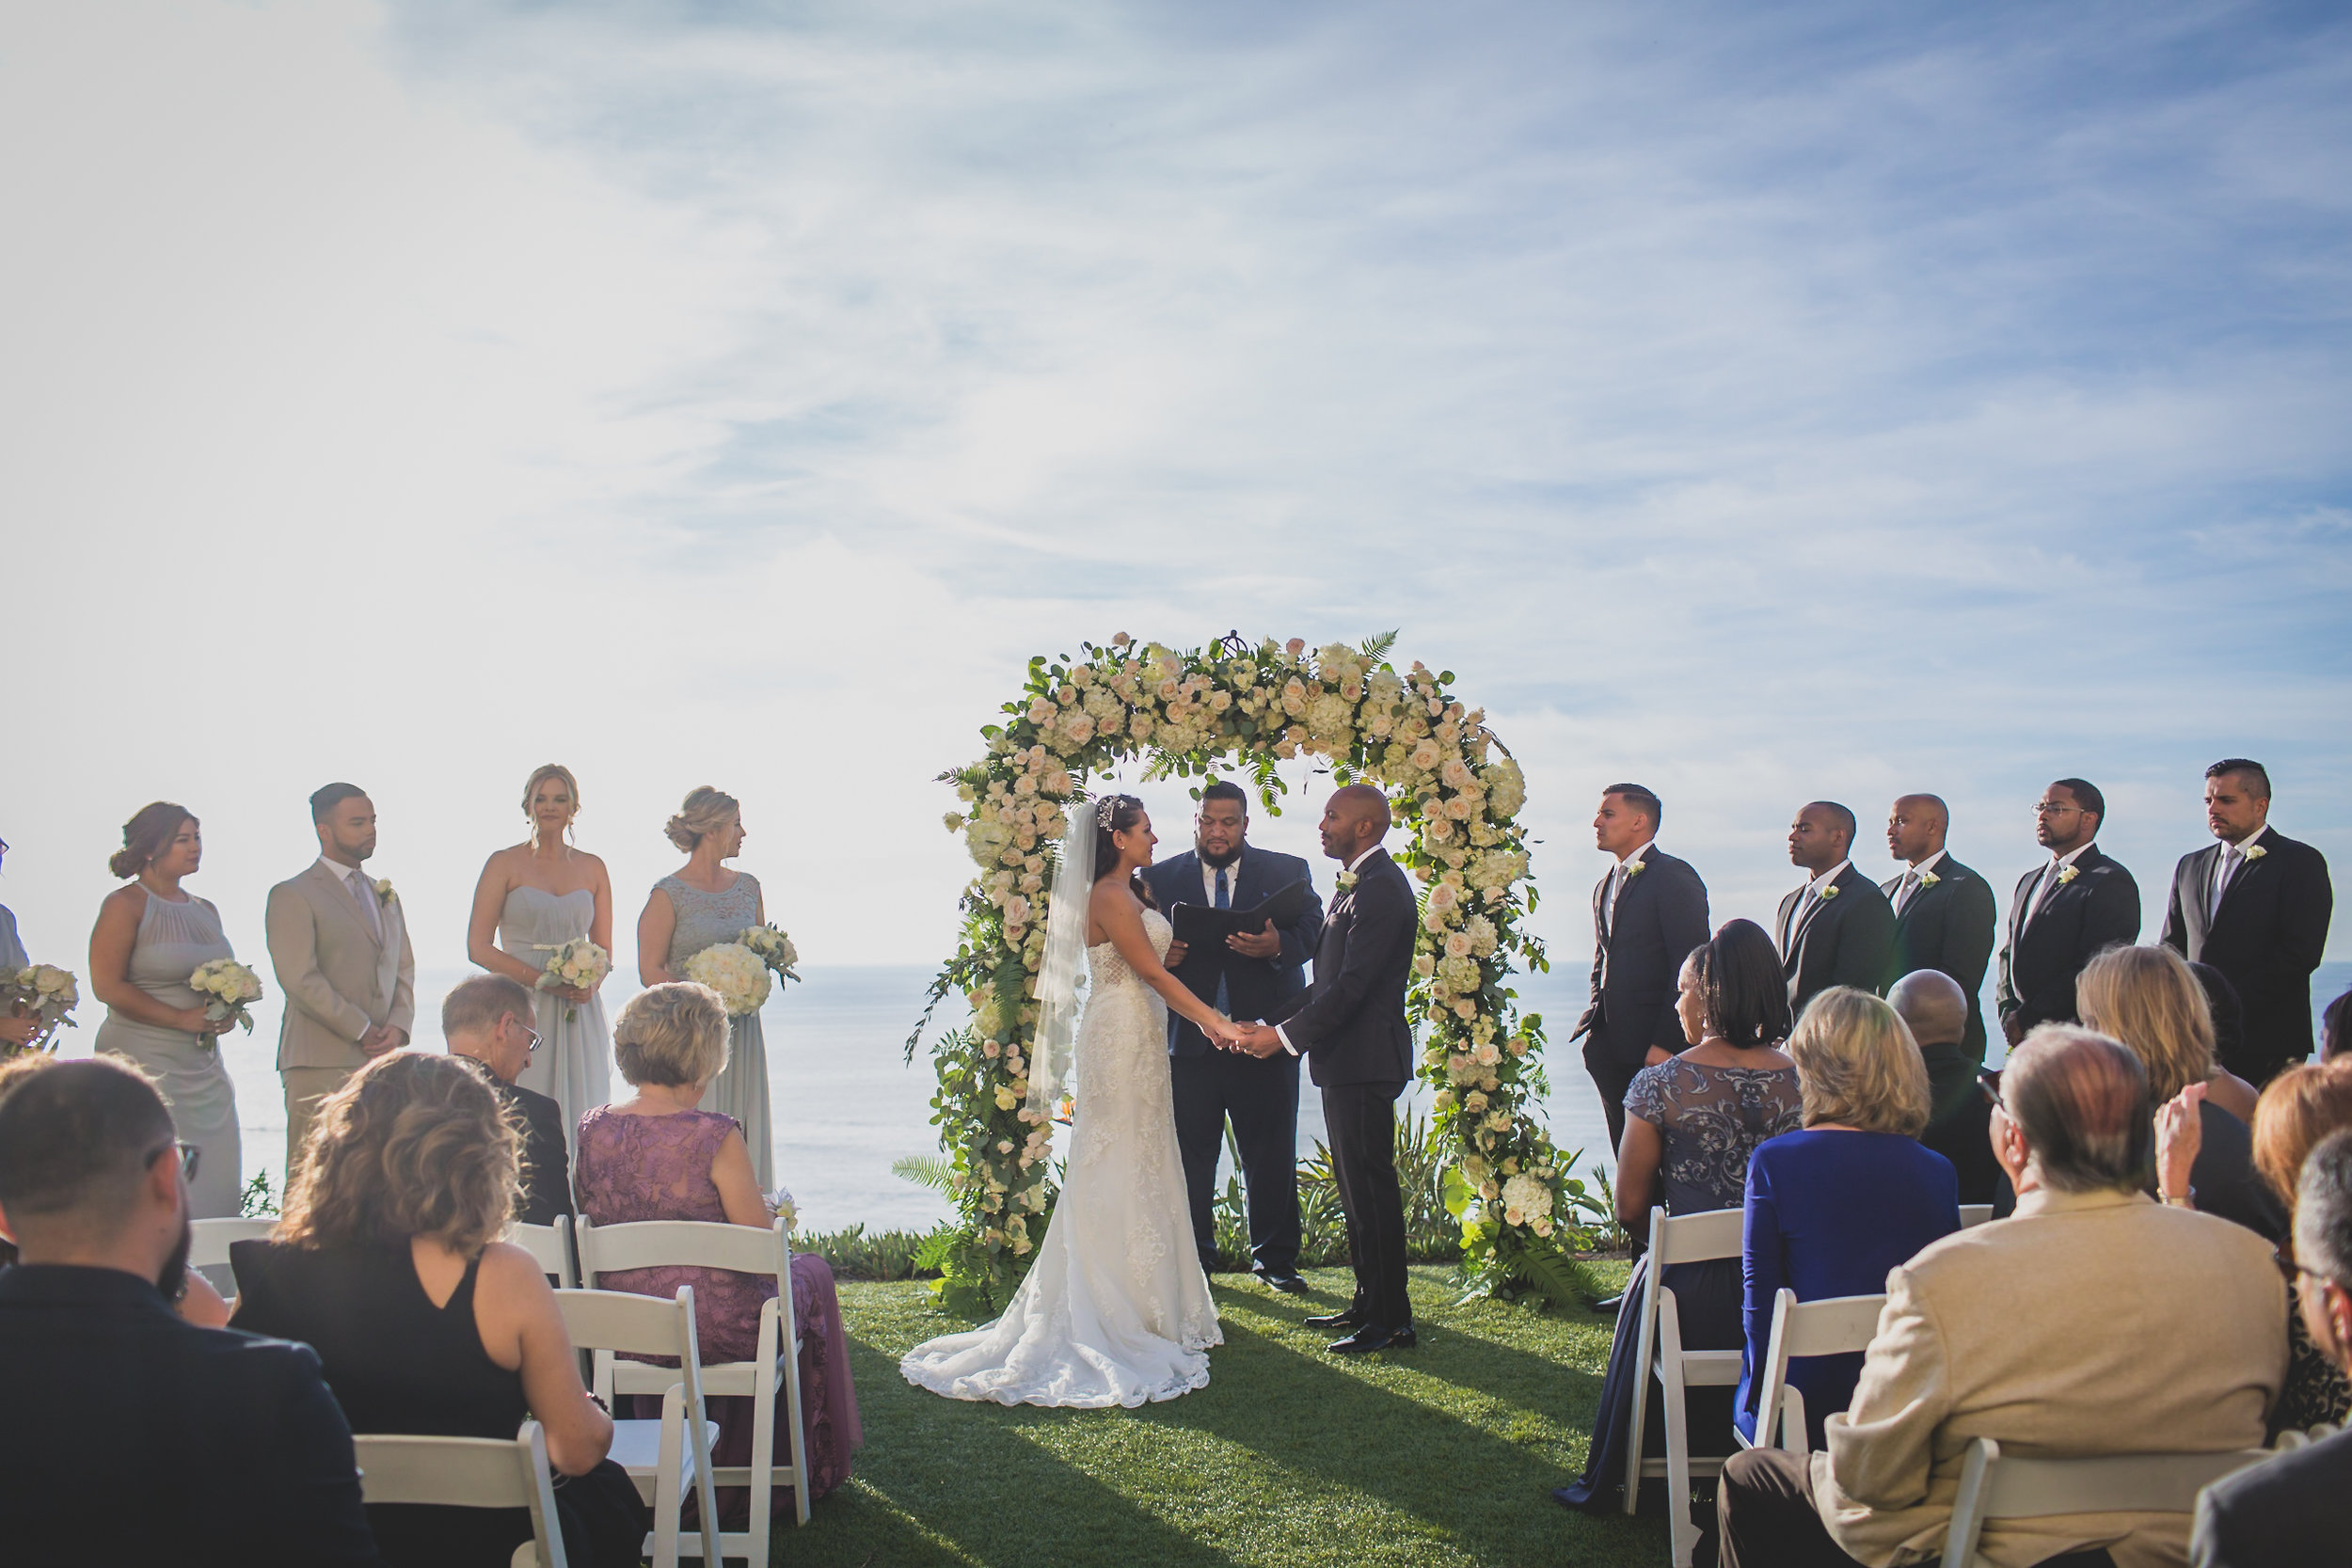 A wedding ceremony on a grassy cliff overlooking the ocean.